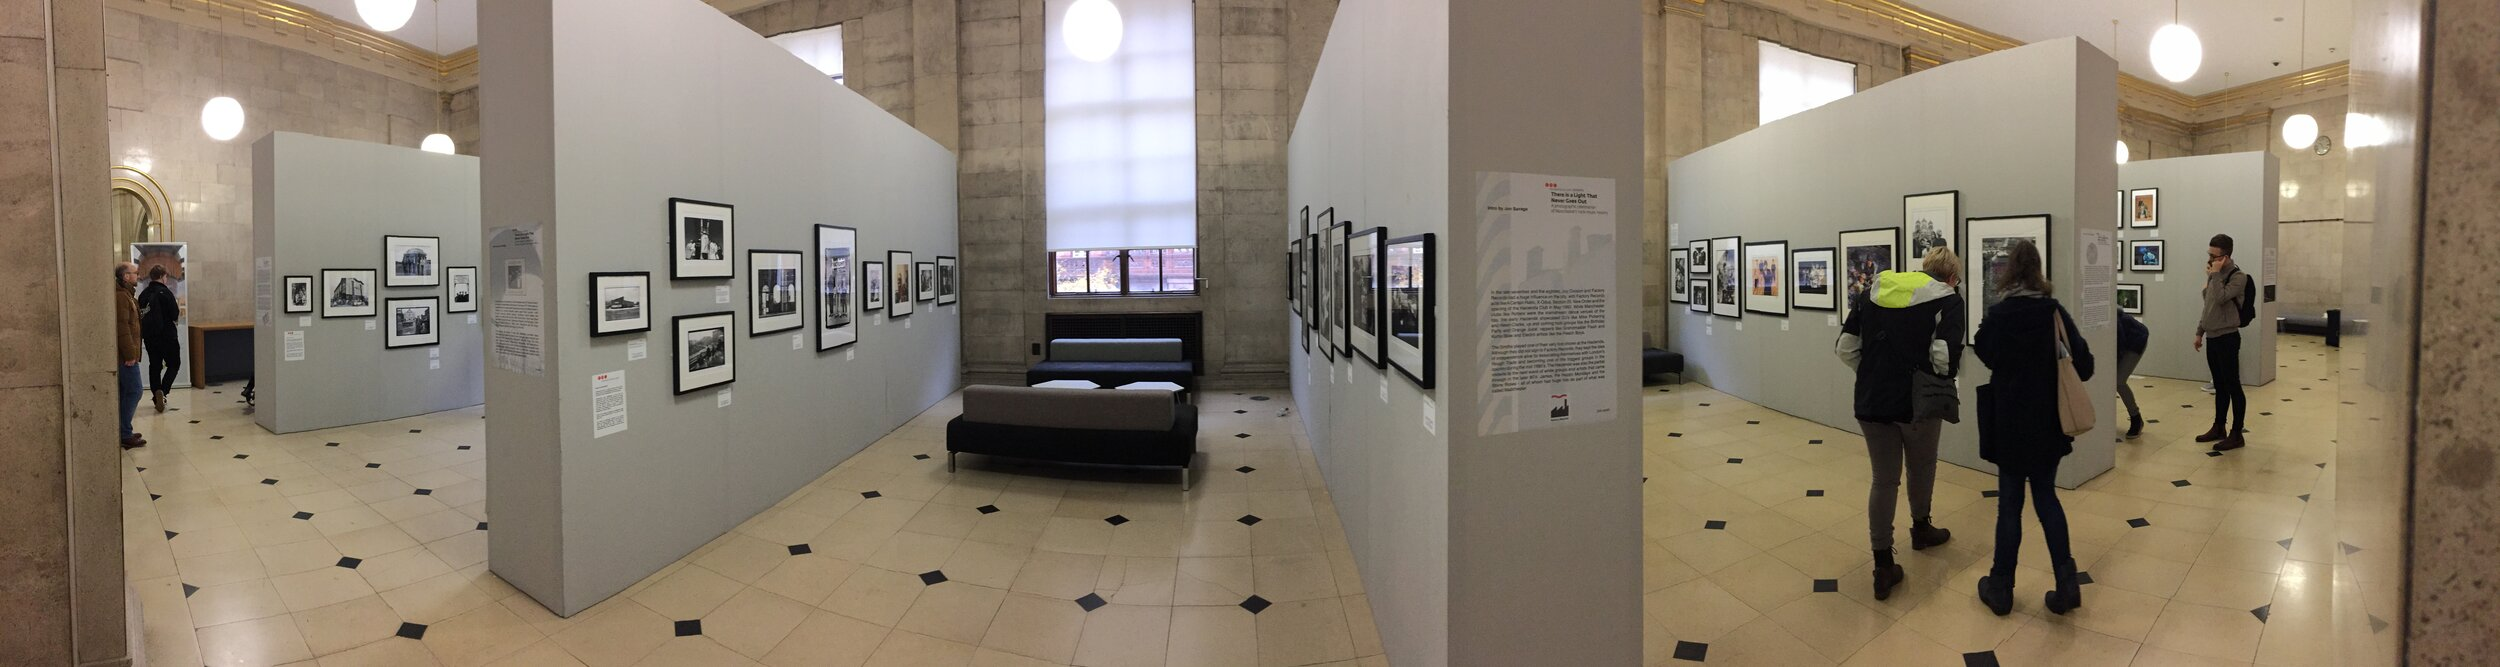 Panorama of the exhibition space at Manchester Central Library that I will be exhibiting in from September 2020 till the end of December 2020